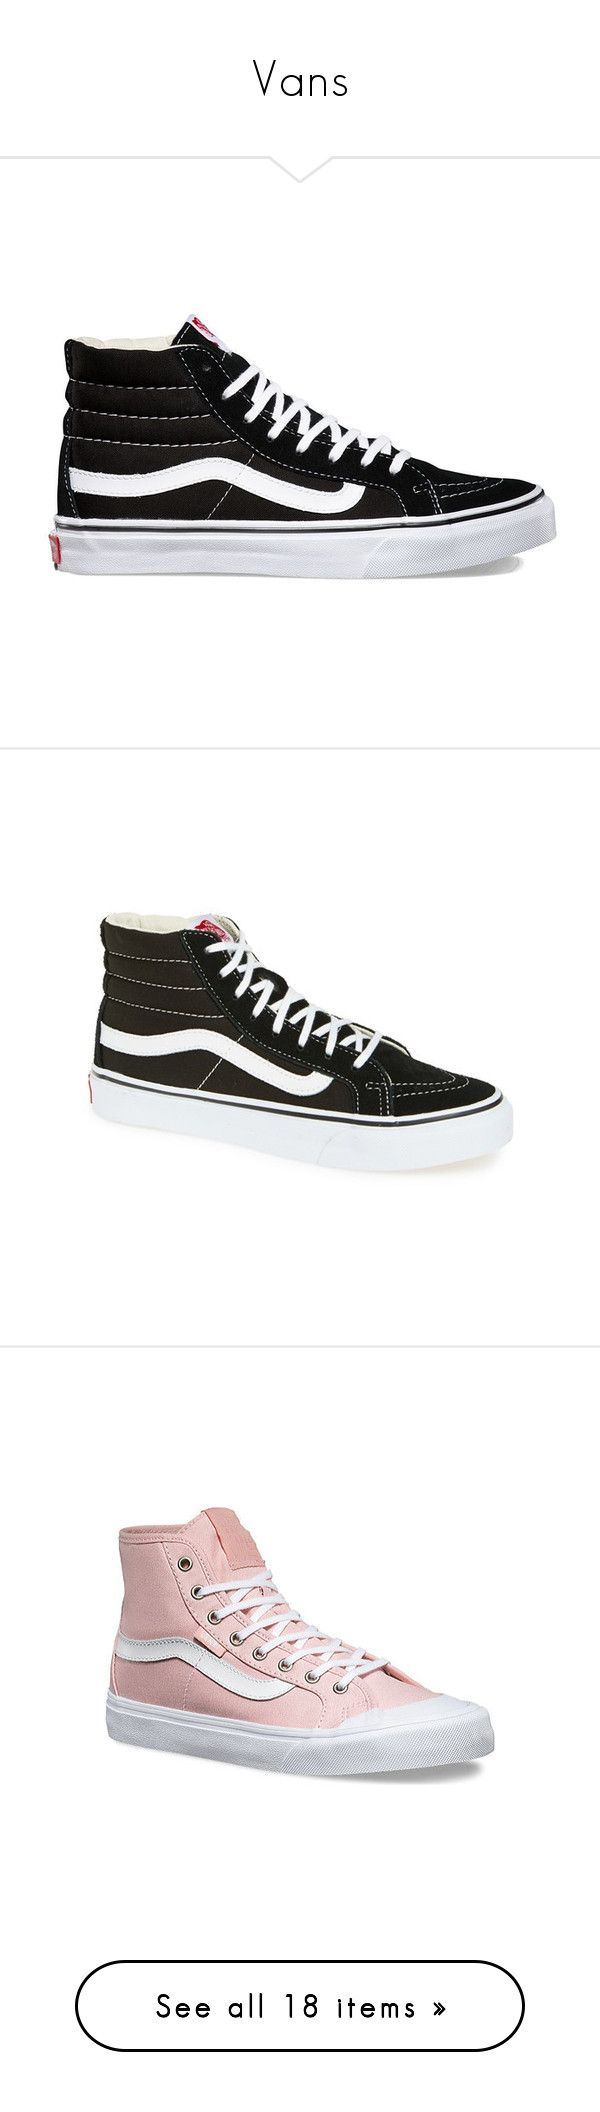 """""""Vans"""" by rayvrayv98 ❤ liked on Polyvore featuring shoes, sneakers, sapatos, black, black hi top sneakers, black high top sneakers, high-top sneakers, black laced shoes, lace up sneakers and black true white"""